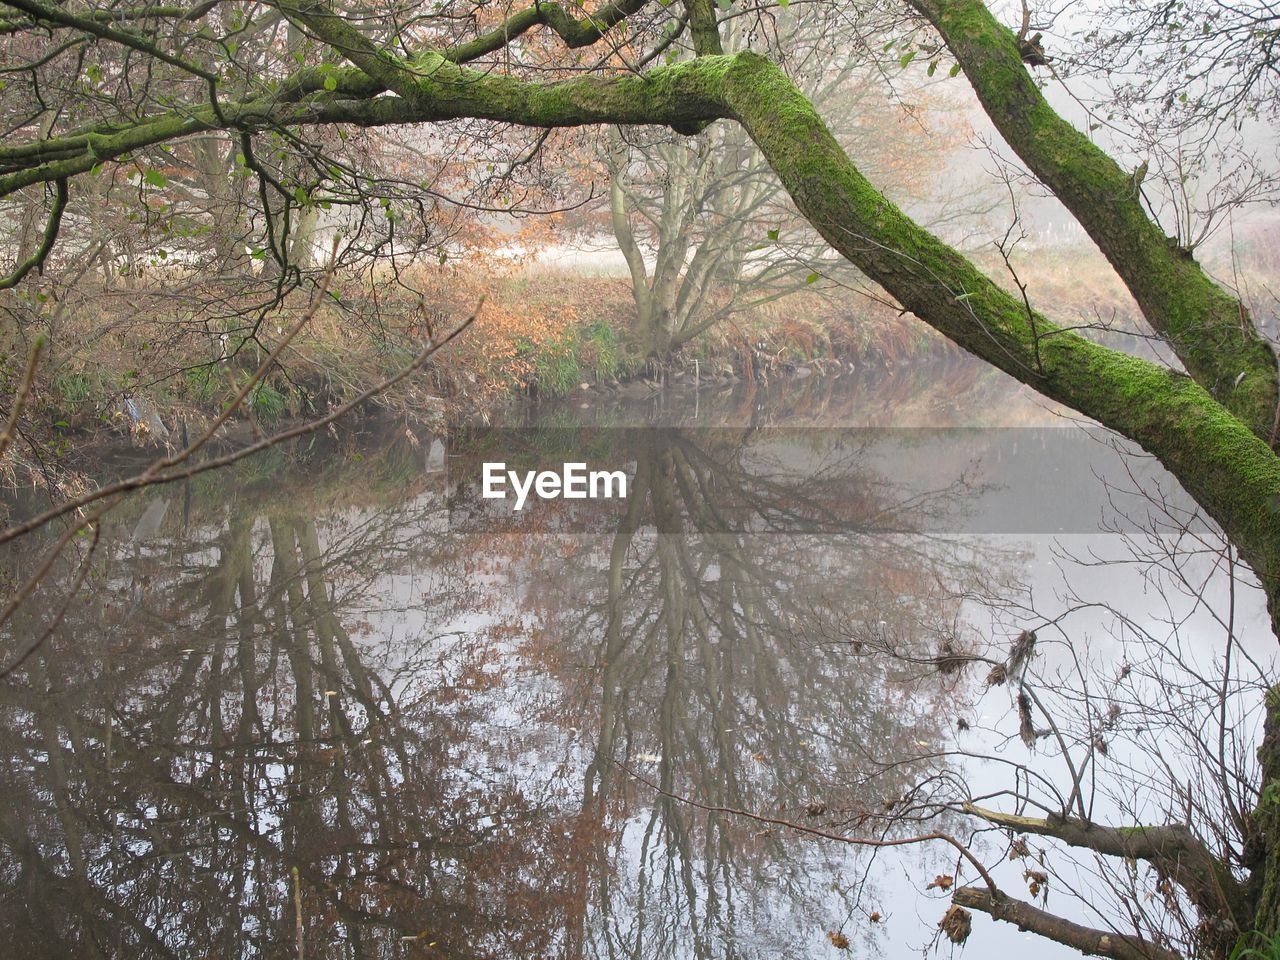 tree, nature, beauty in nature, branch, tranquil scene, outdoors, forest, tranquility, scenics, no people, water, day, autumn, leaf, lake, bare tree, landscape, growth, winter, sky